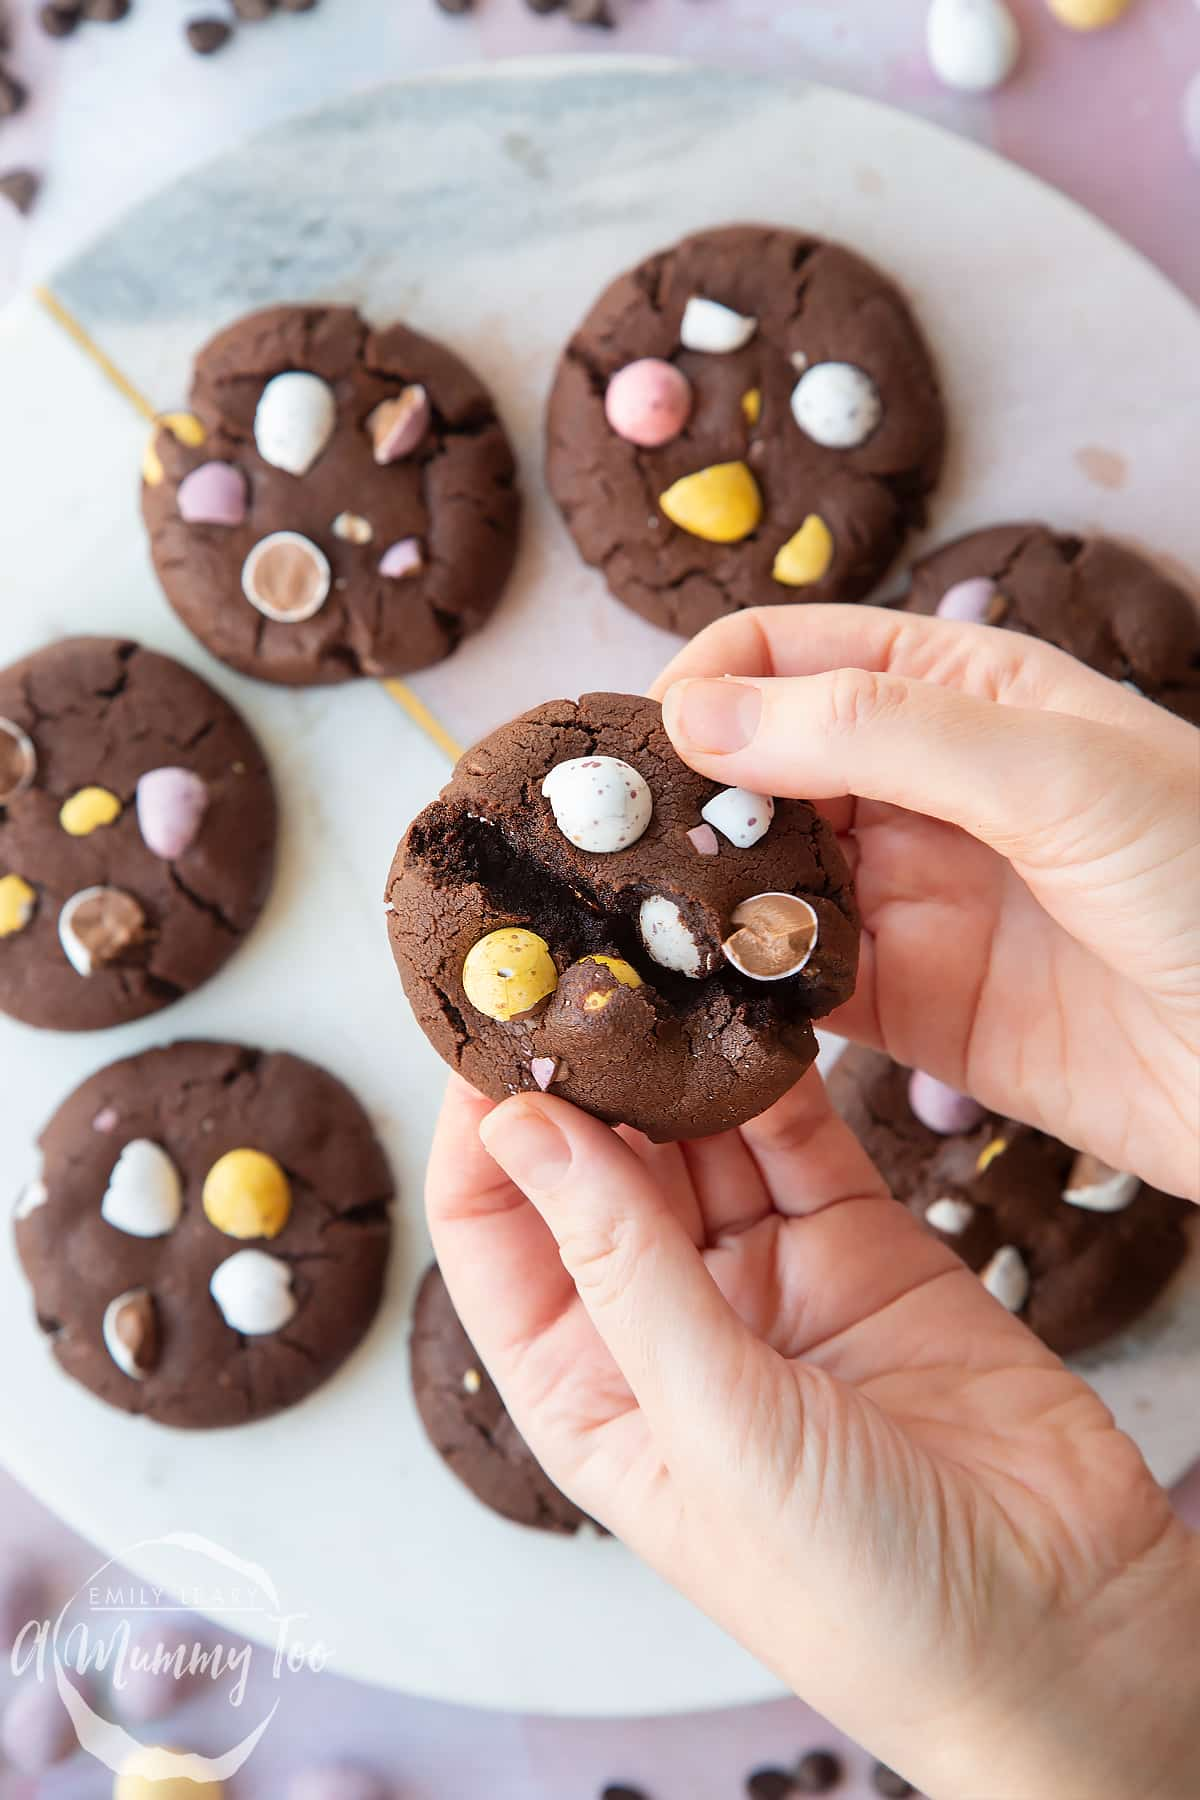 Hands breaking open a chocolate Easter cookie, with more arranged on a round marble board. The cookies are chocolate brown and topped with Mini Eggs.